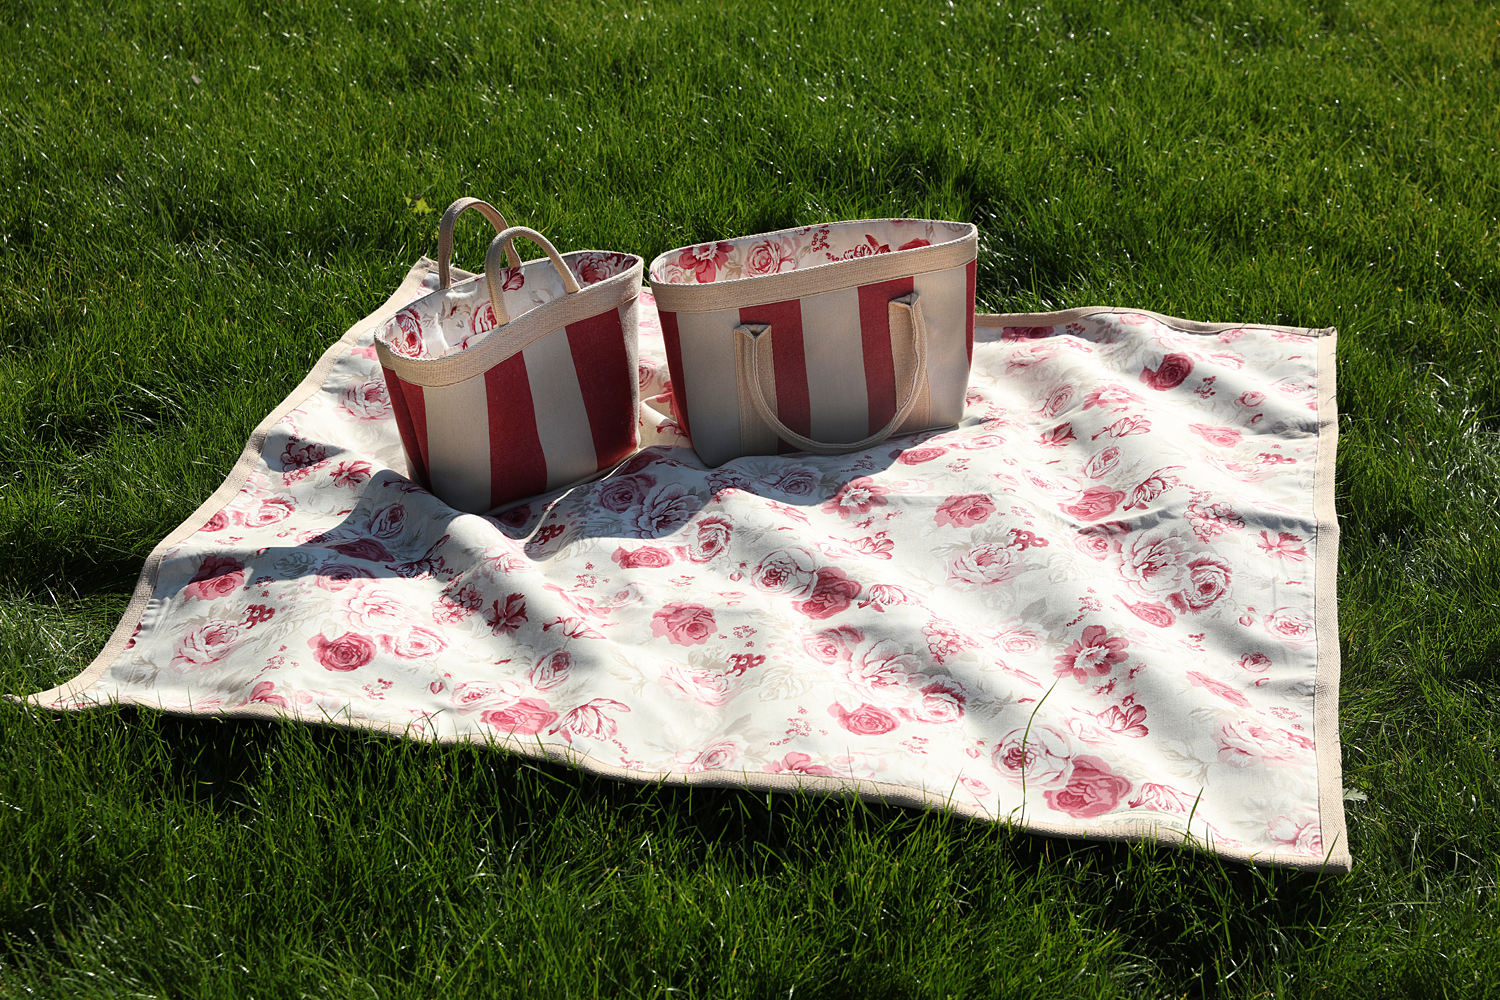 Red Roses Picnic Bag and Rug Set